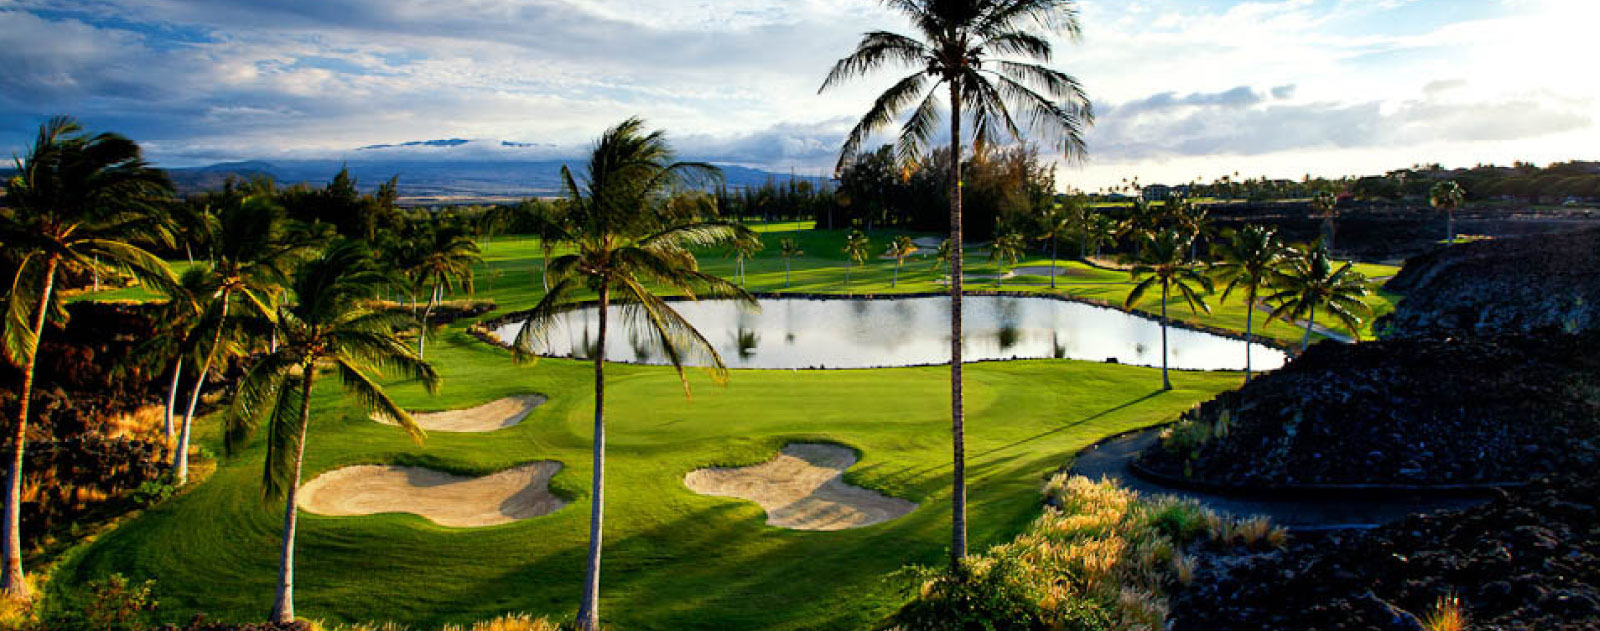 Waikkoloa Beach Resort Golf Course